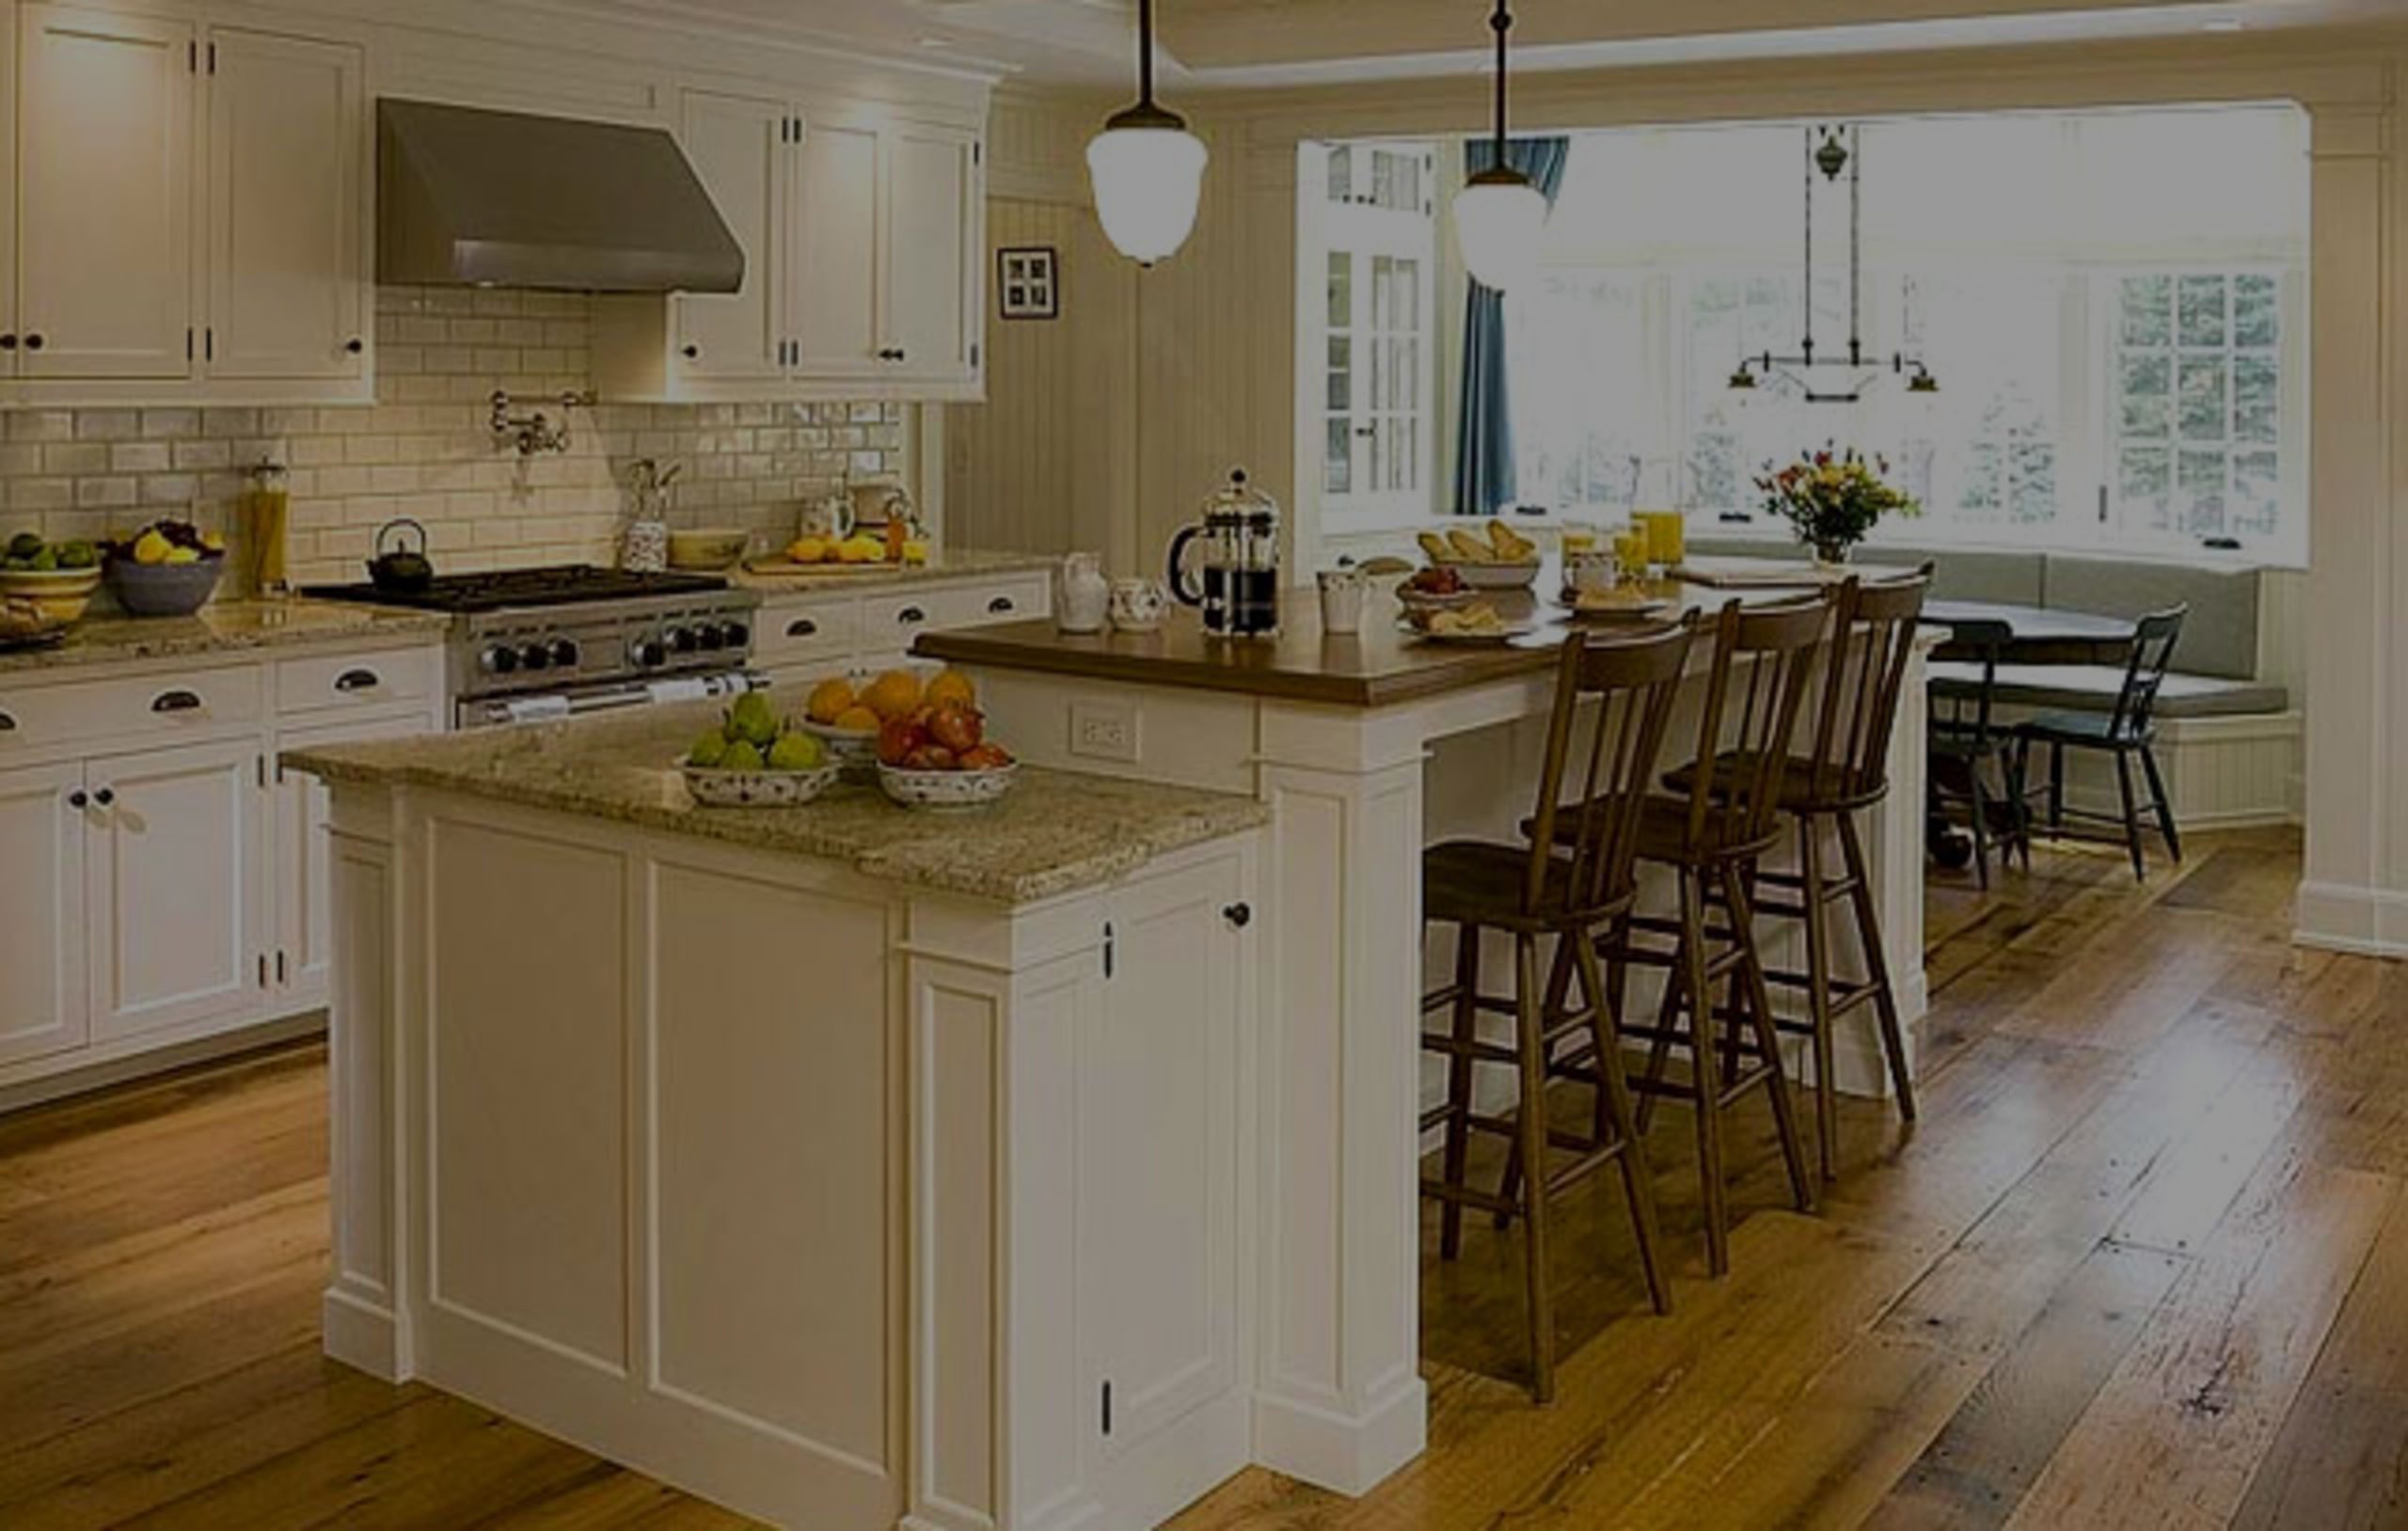 A Modular Kitchen Hastens Home Selling